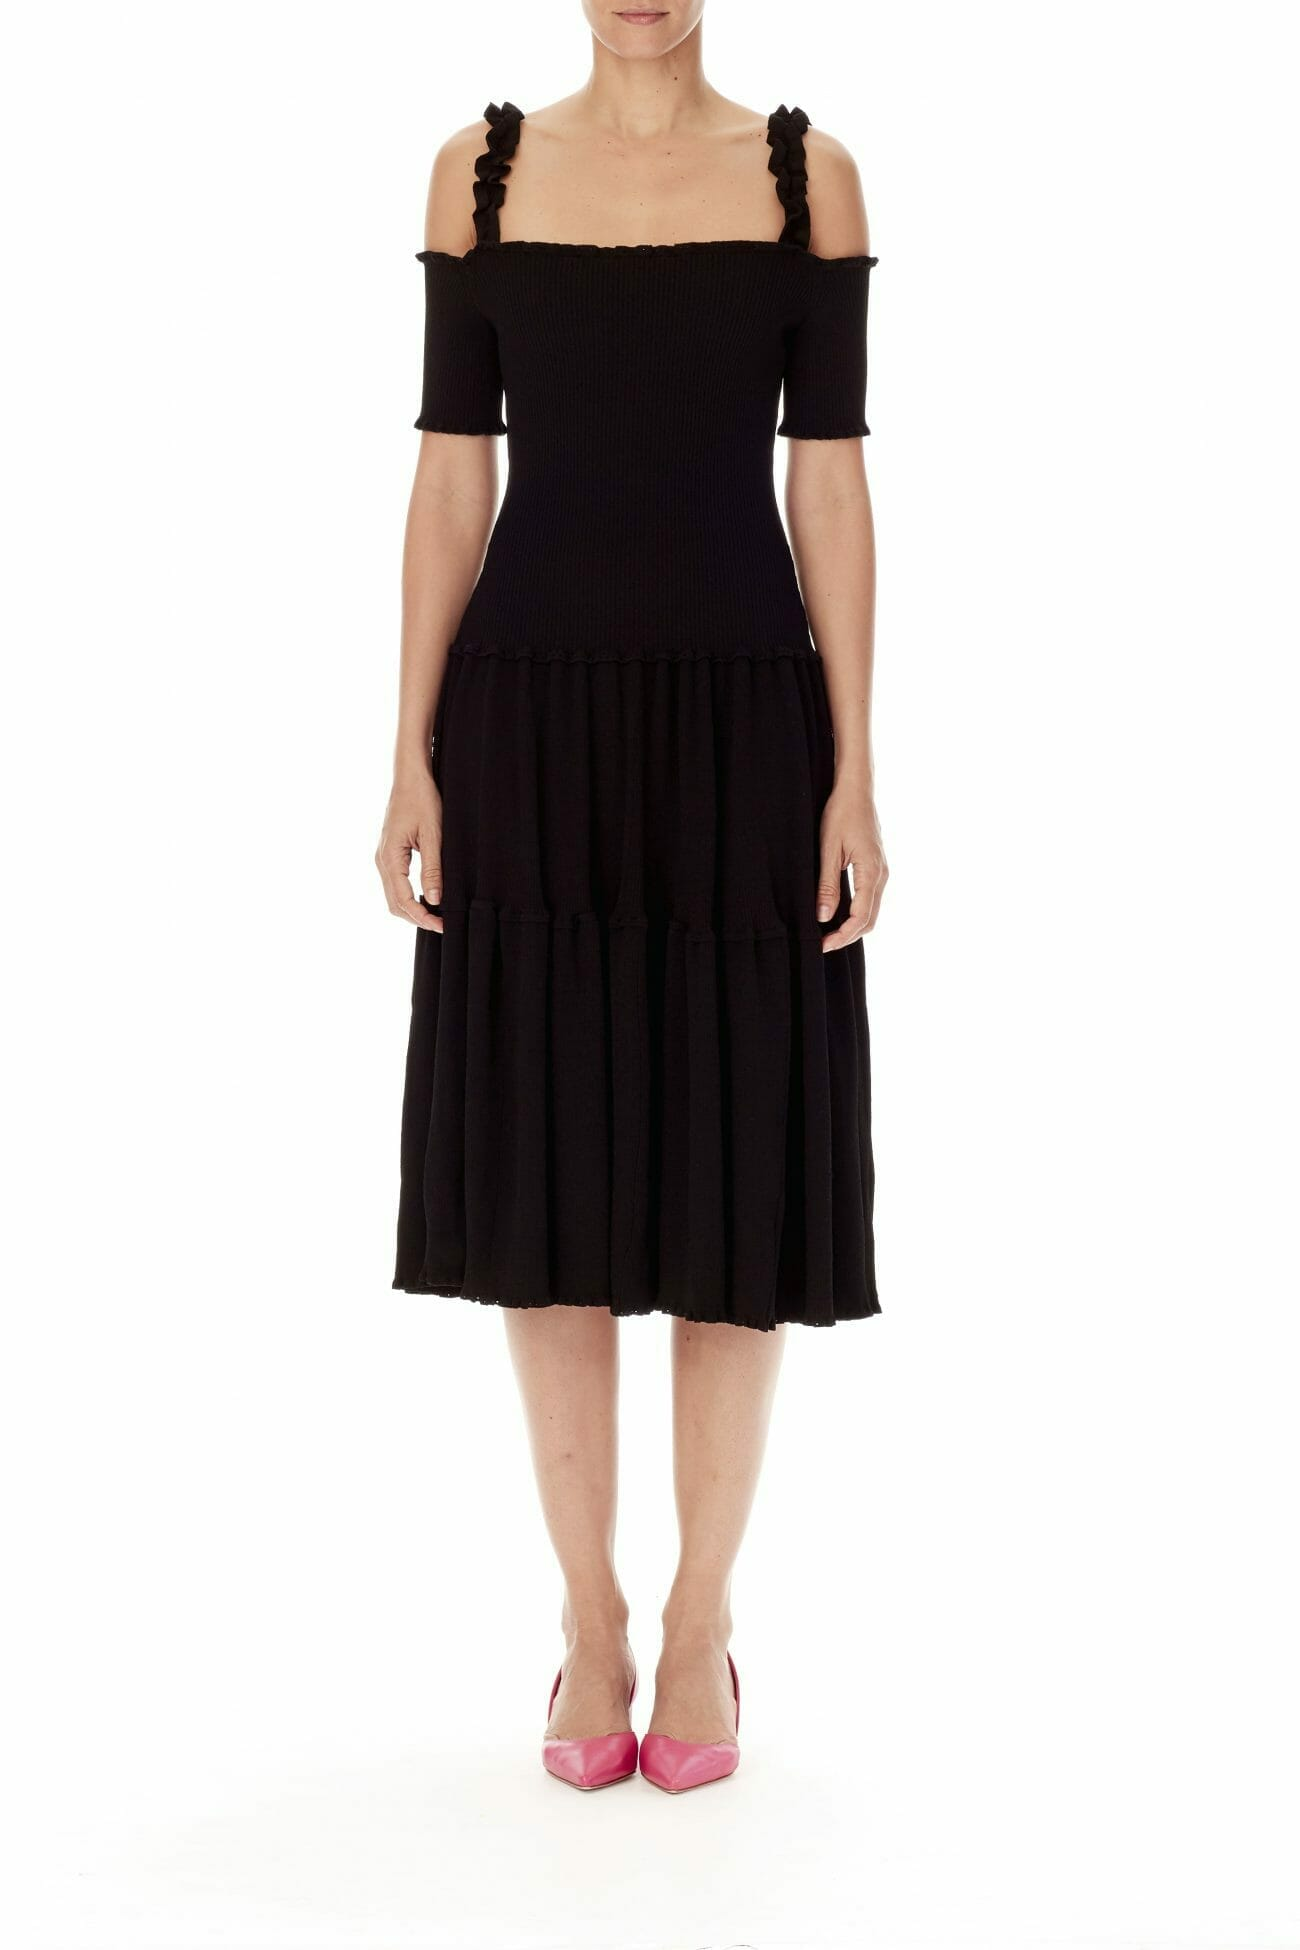 Carolina-Herrera-New-York-Resort-2019-look-148-black-dress-lbd-elegant-shoulders-off-middle-lenght